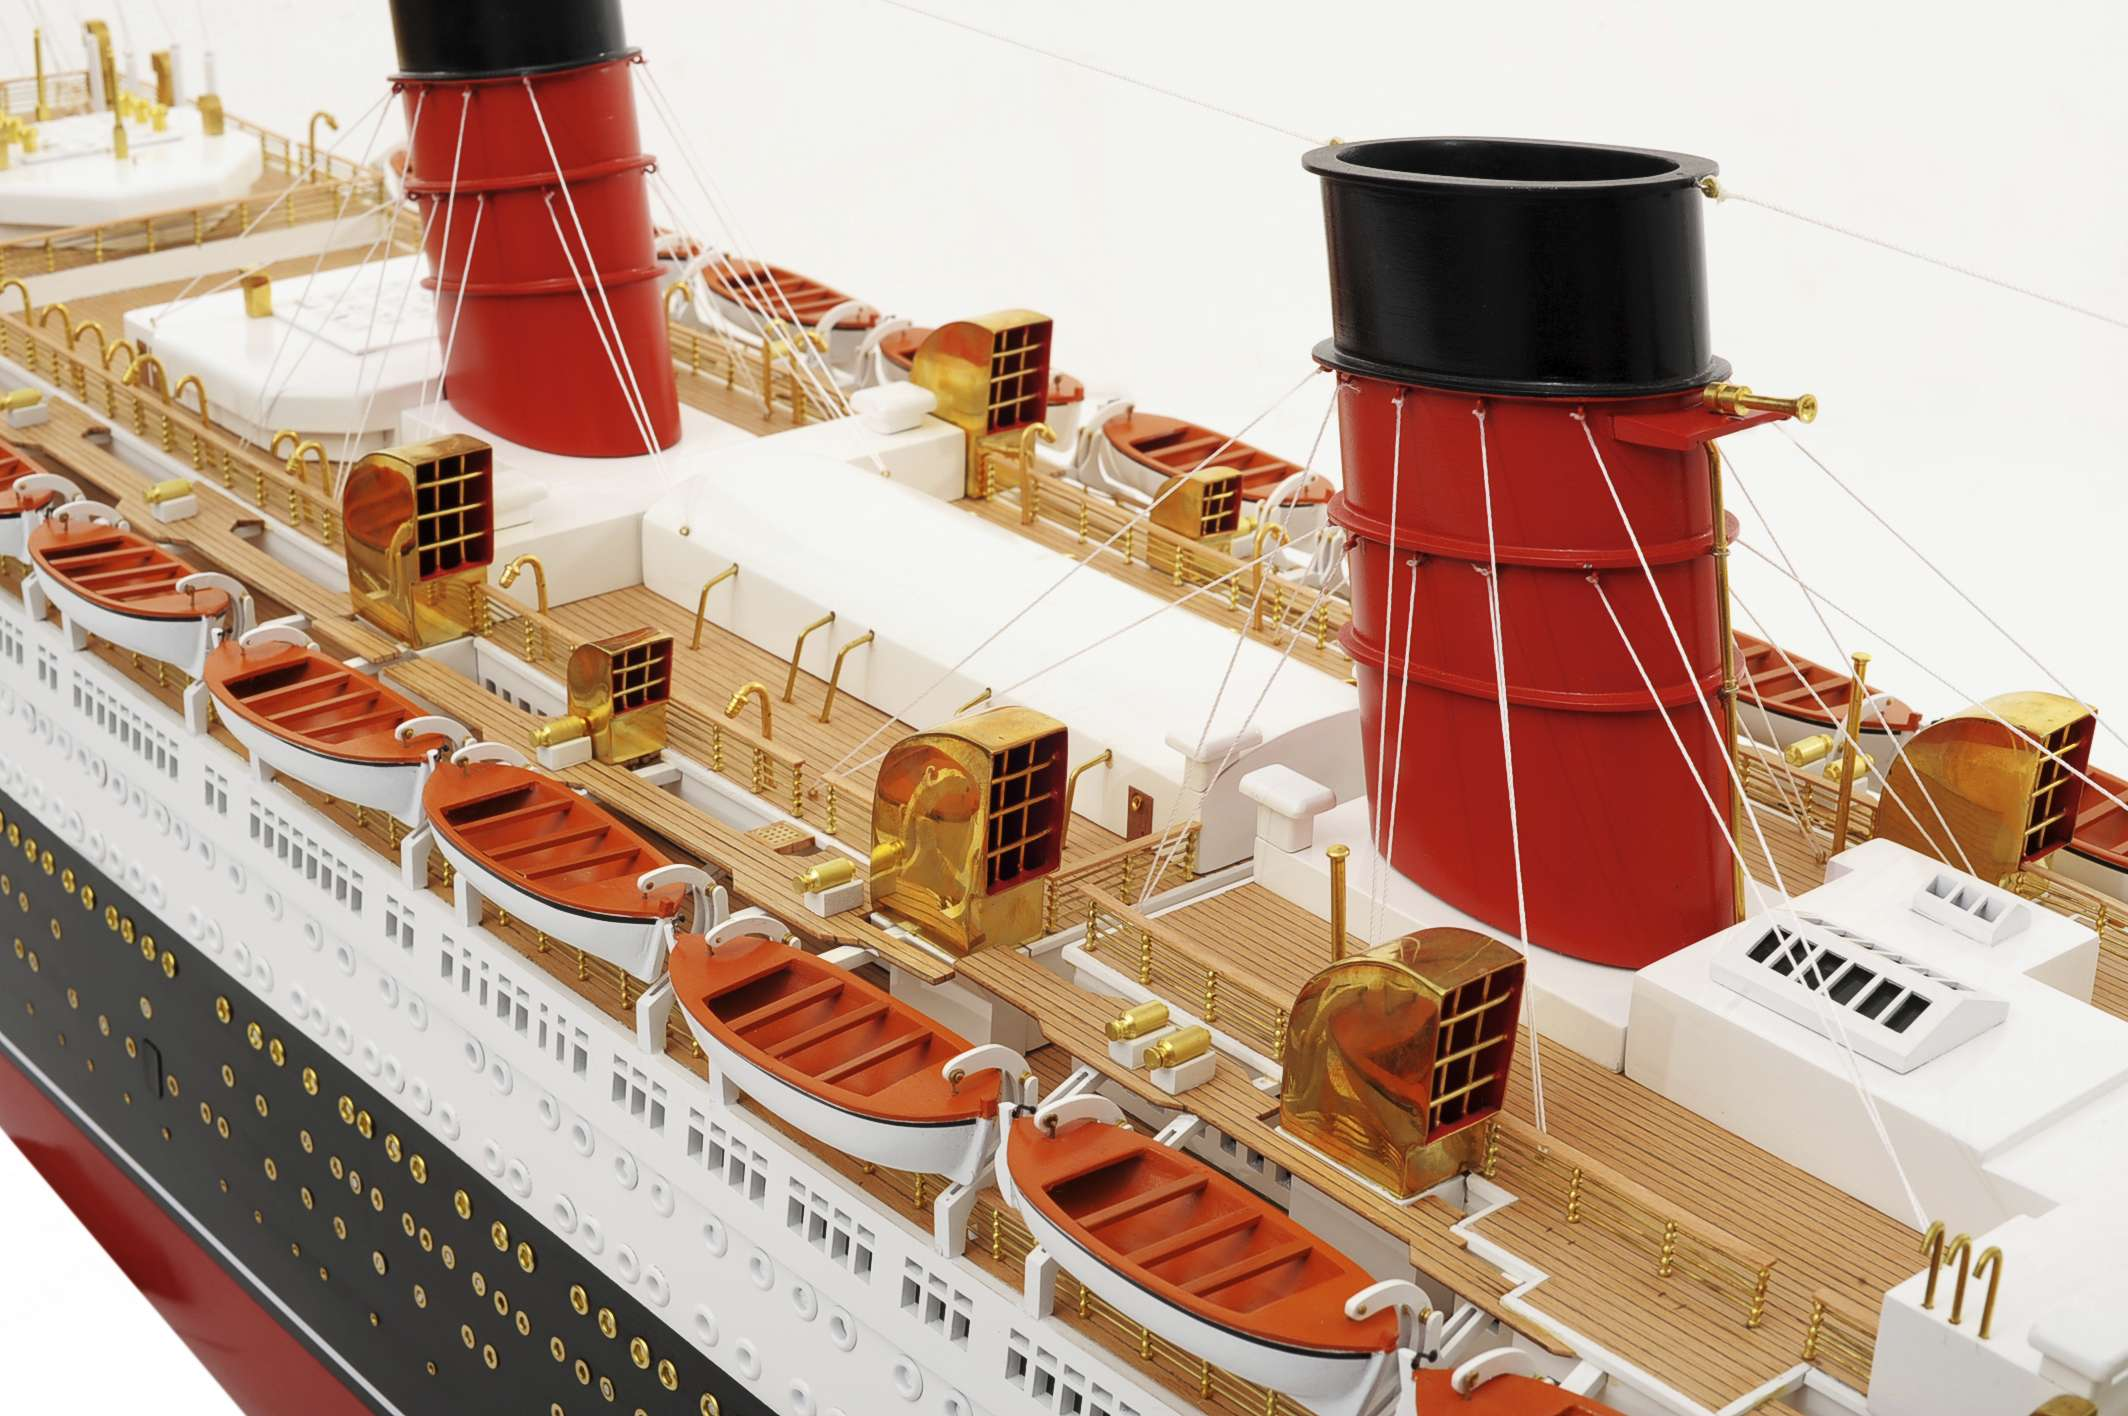 1484-4977-RMS-Queen-Mary-Model